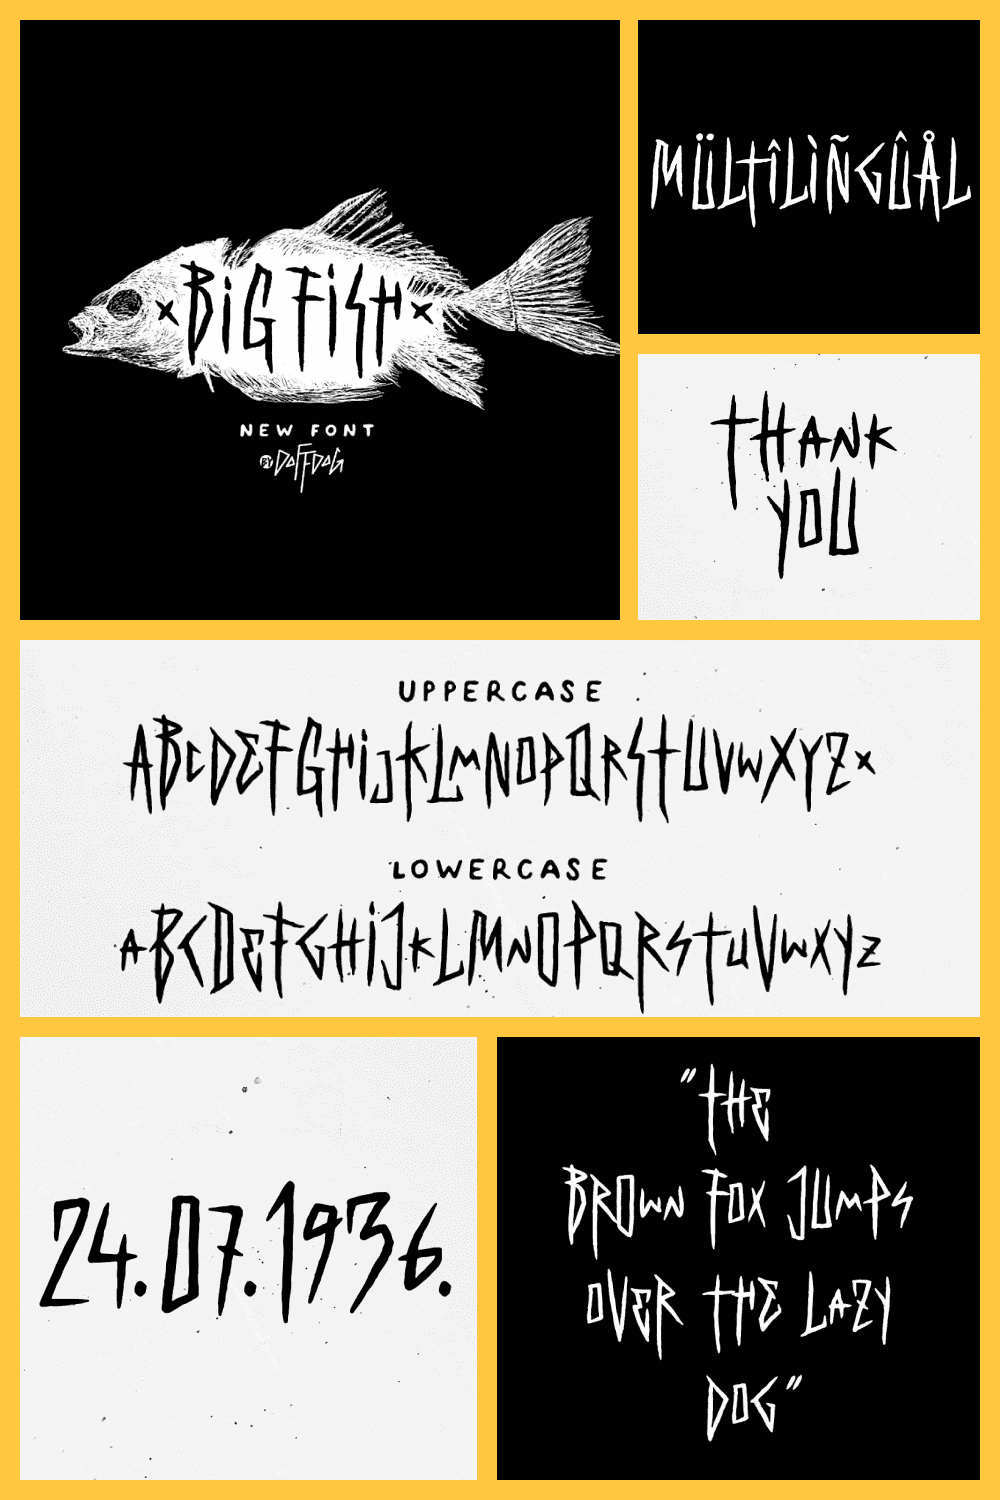 Big Fish is a decorative, metal and punk rock music inspired font.